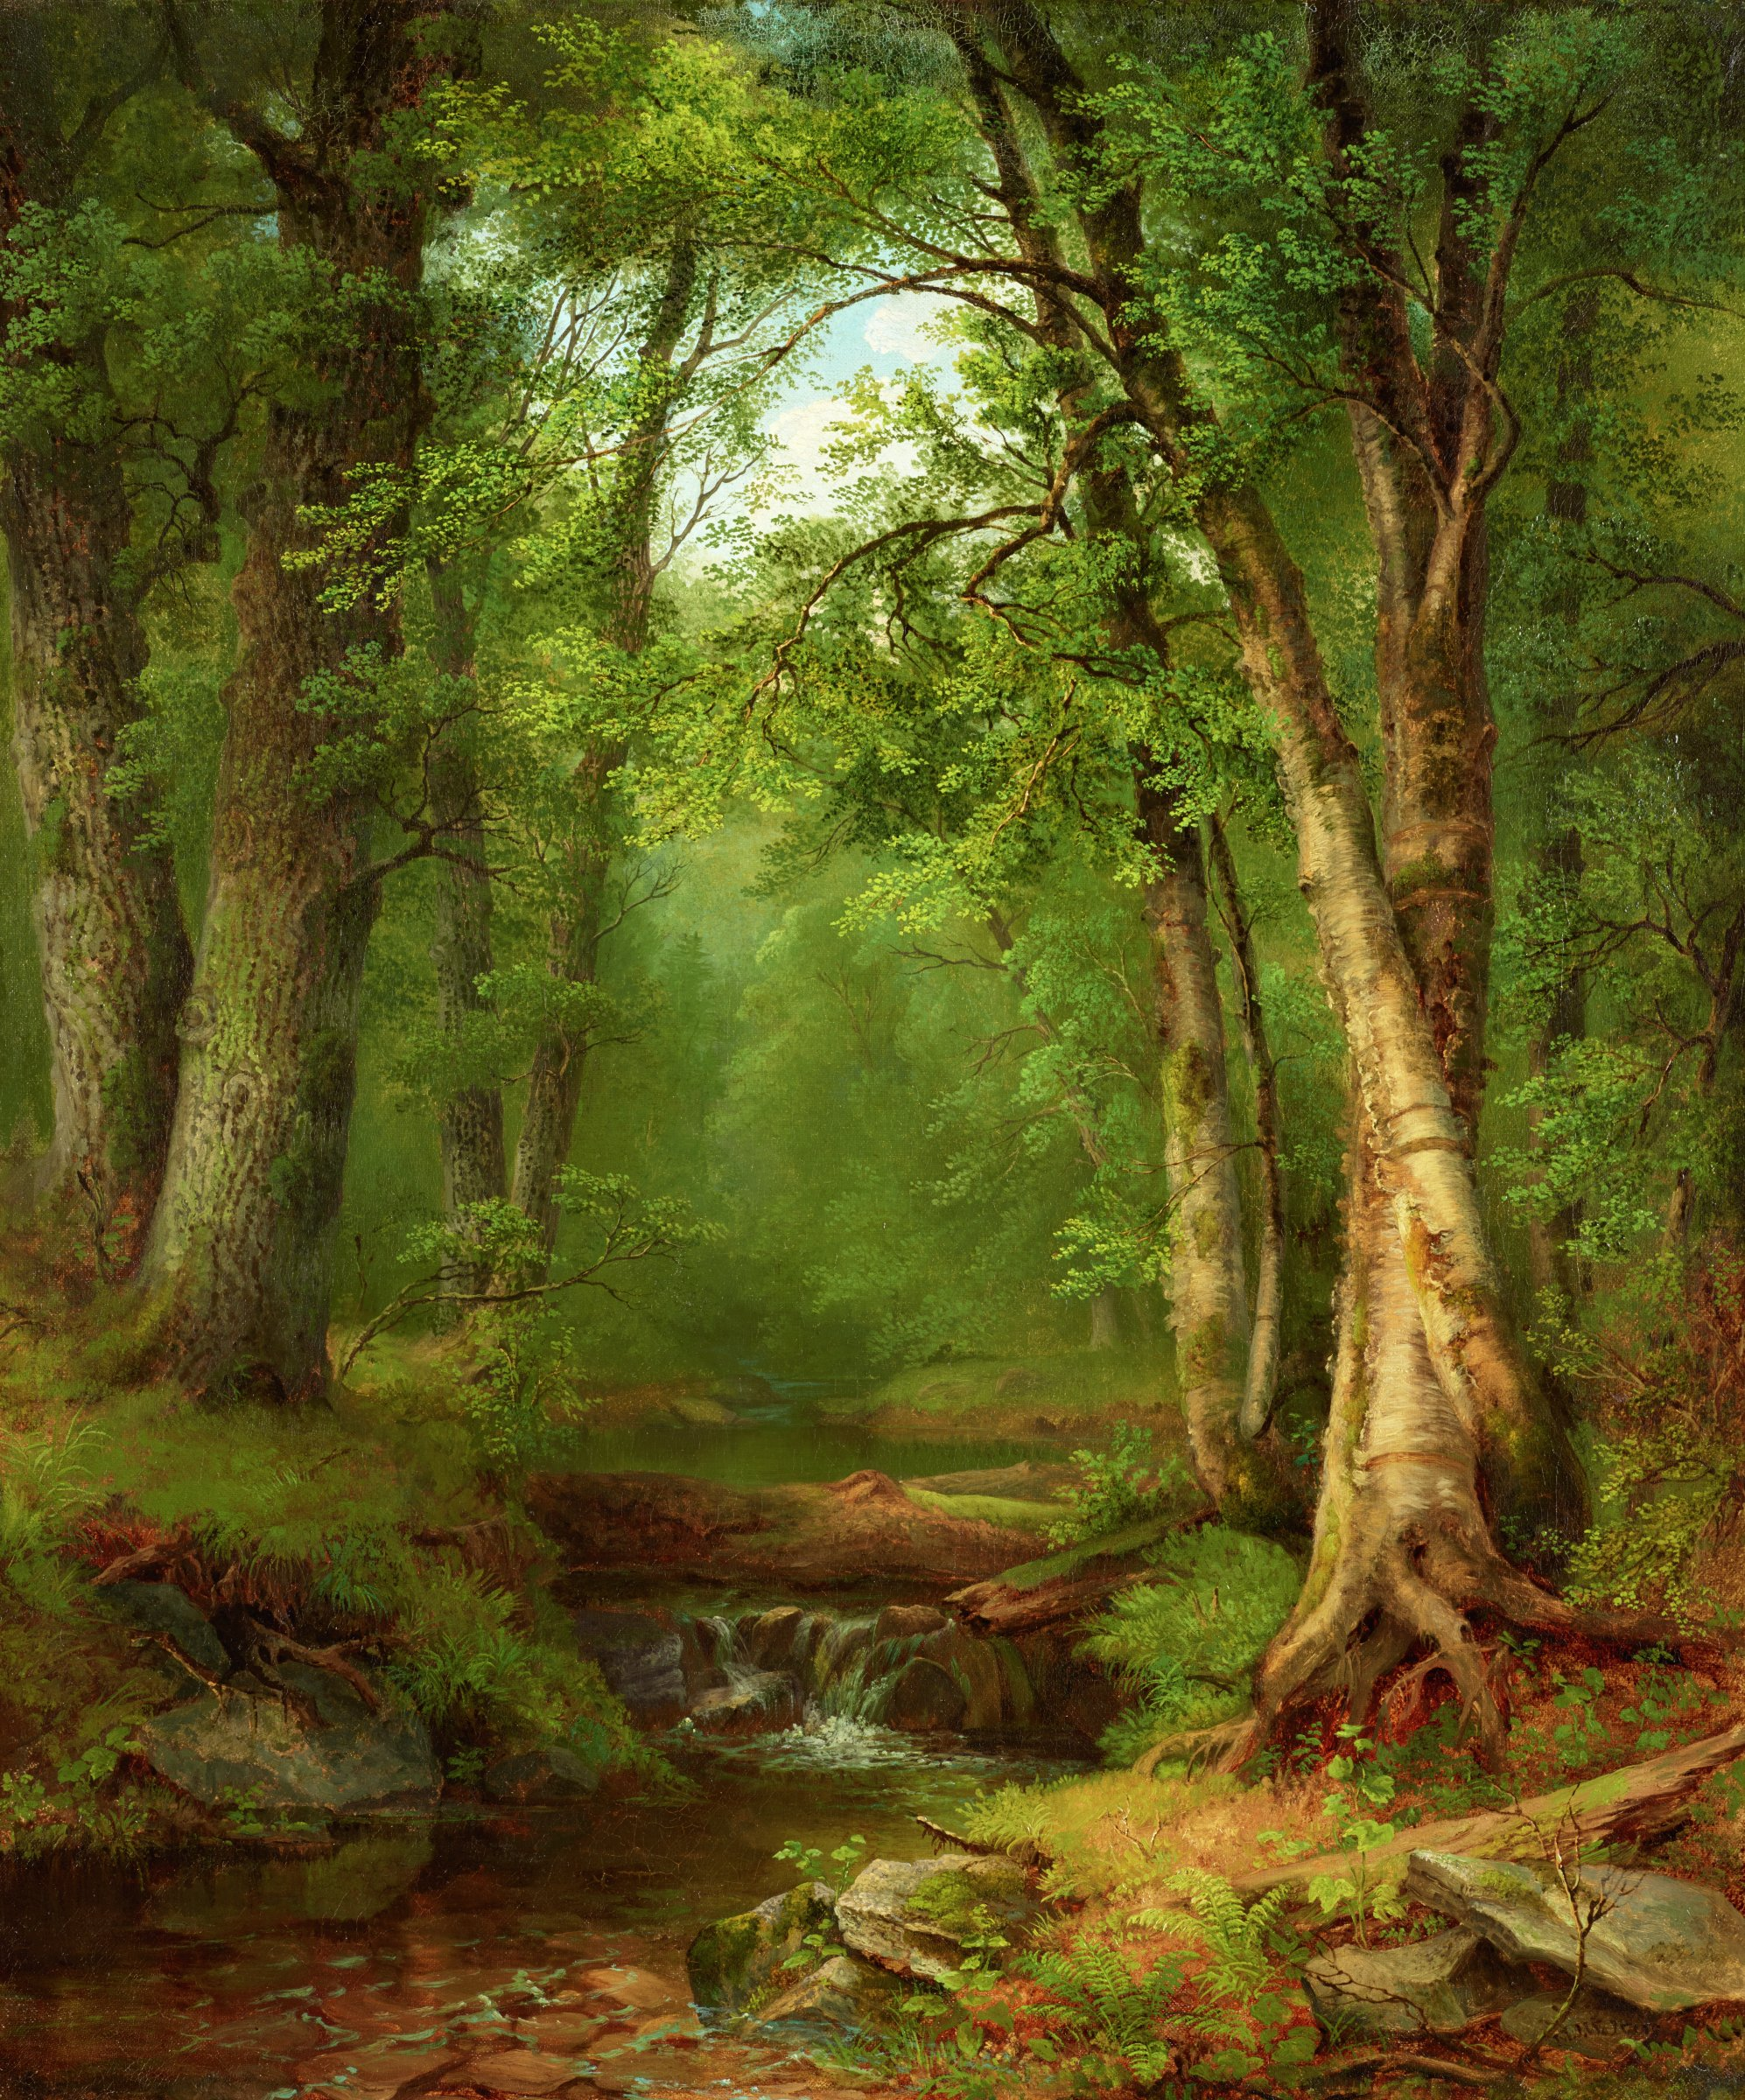 In the Woods, Mary Josephine Walters, oil on canvas